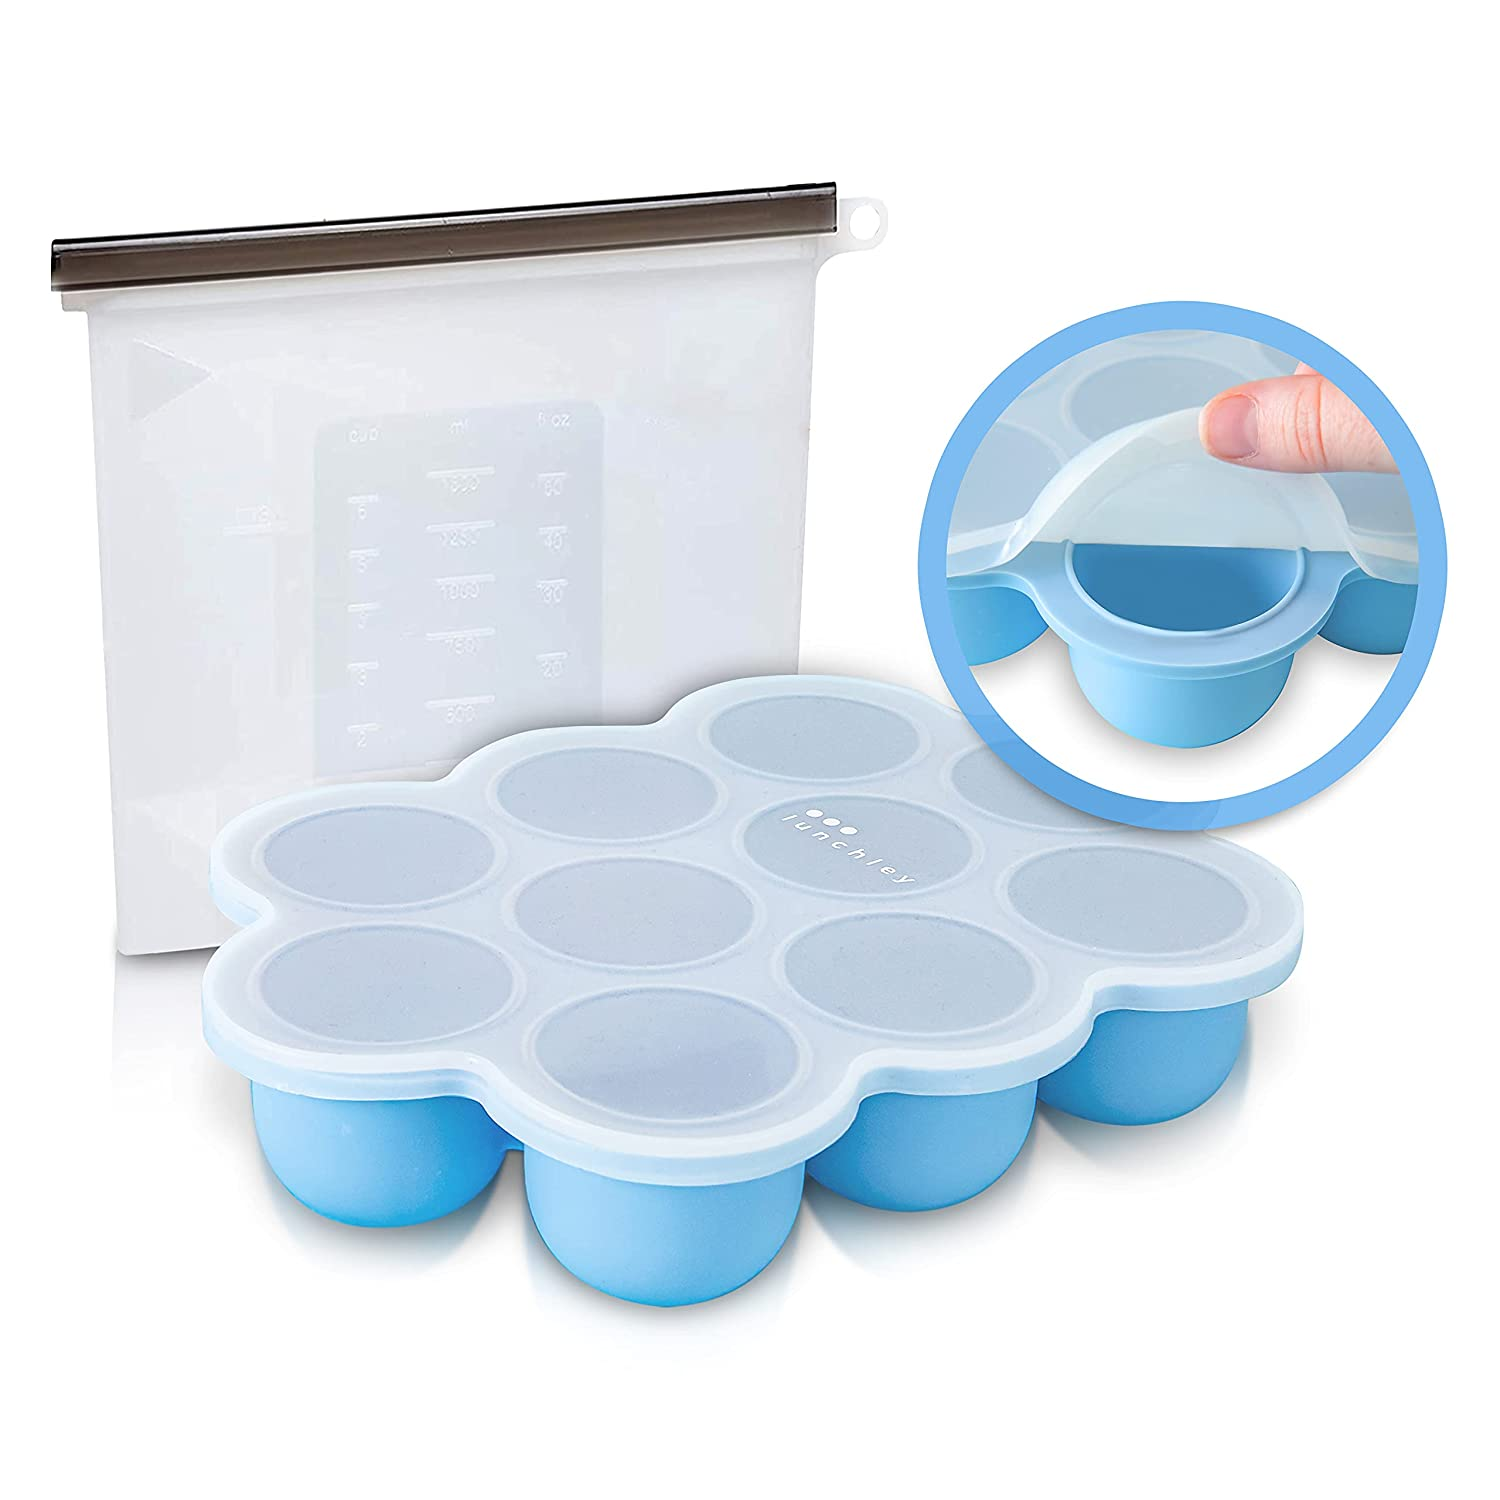 Baby Food Freezer Tray with Silicone Clip-On Lid Plus 1500ml Silicone Reusable Bag | The Perfect Storage Duo for Homemade Baby Food, Vegetable & Fruit Purees and Breast Milk (Cyan Blue)